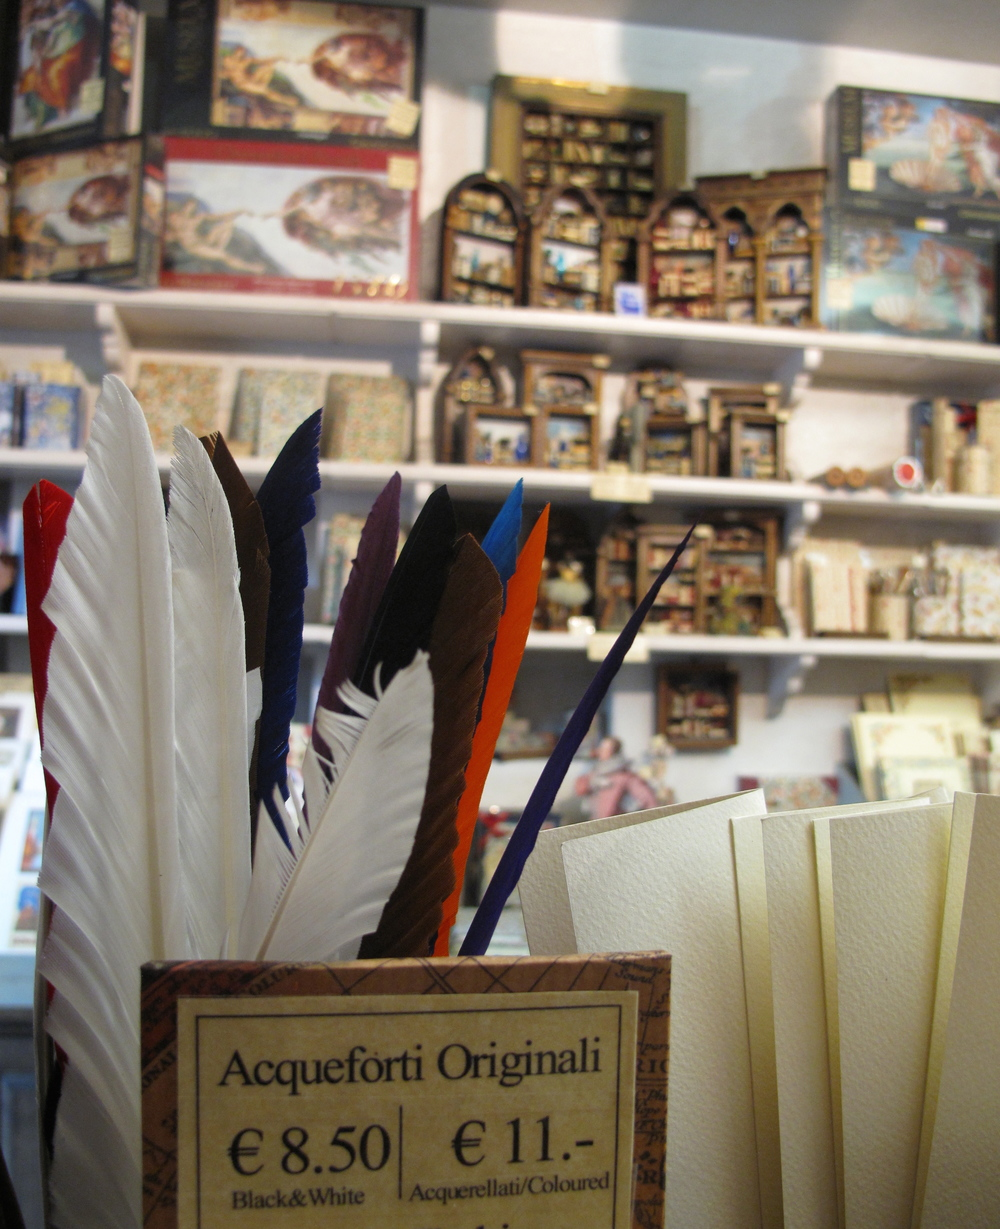 Quills and lovely thick papers being sold at a papeterie in Florence